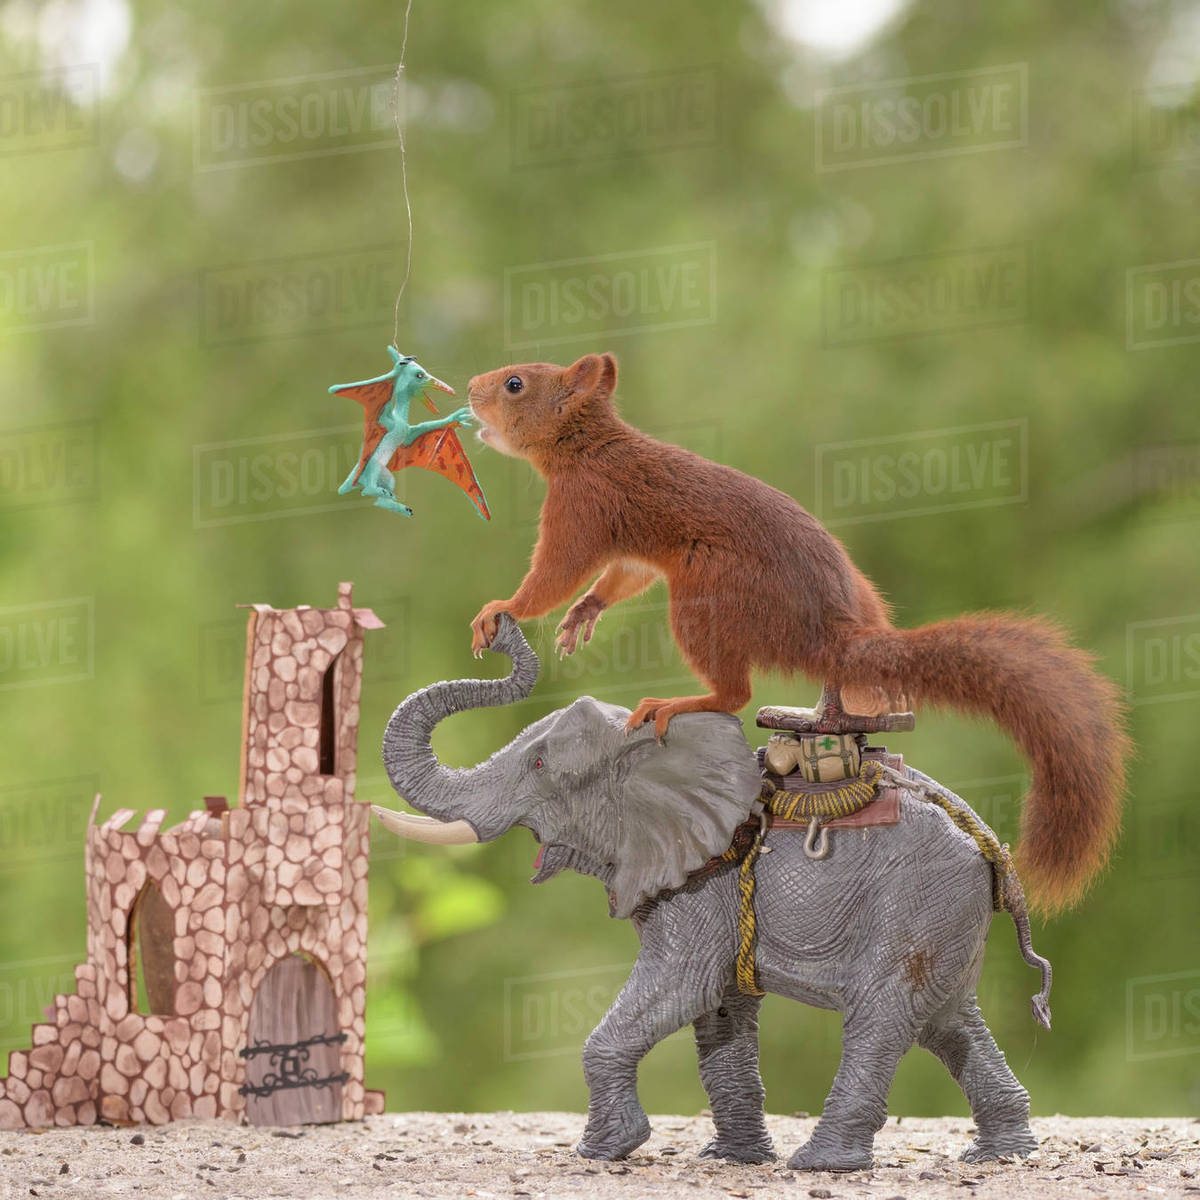 cute scene with red squirrel riding toy elephant and